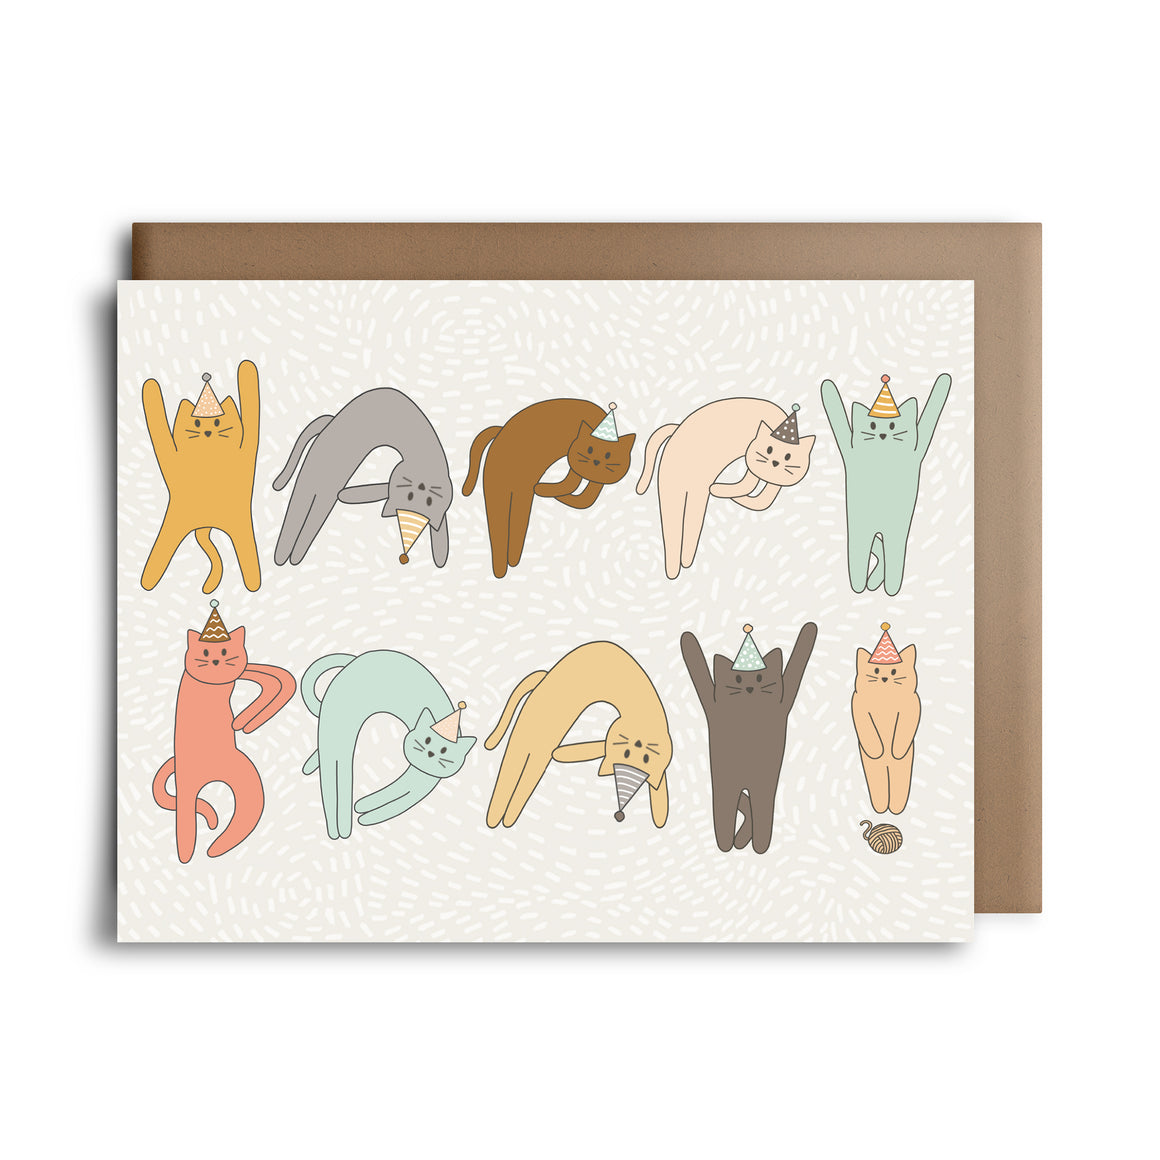 hbd cats | greeting card